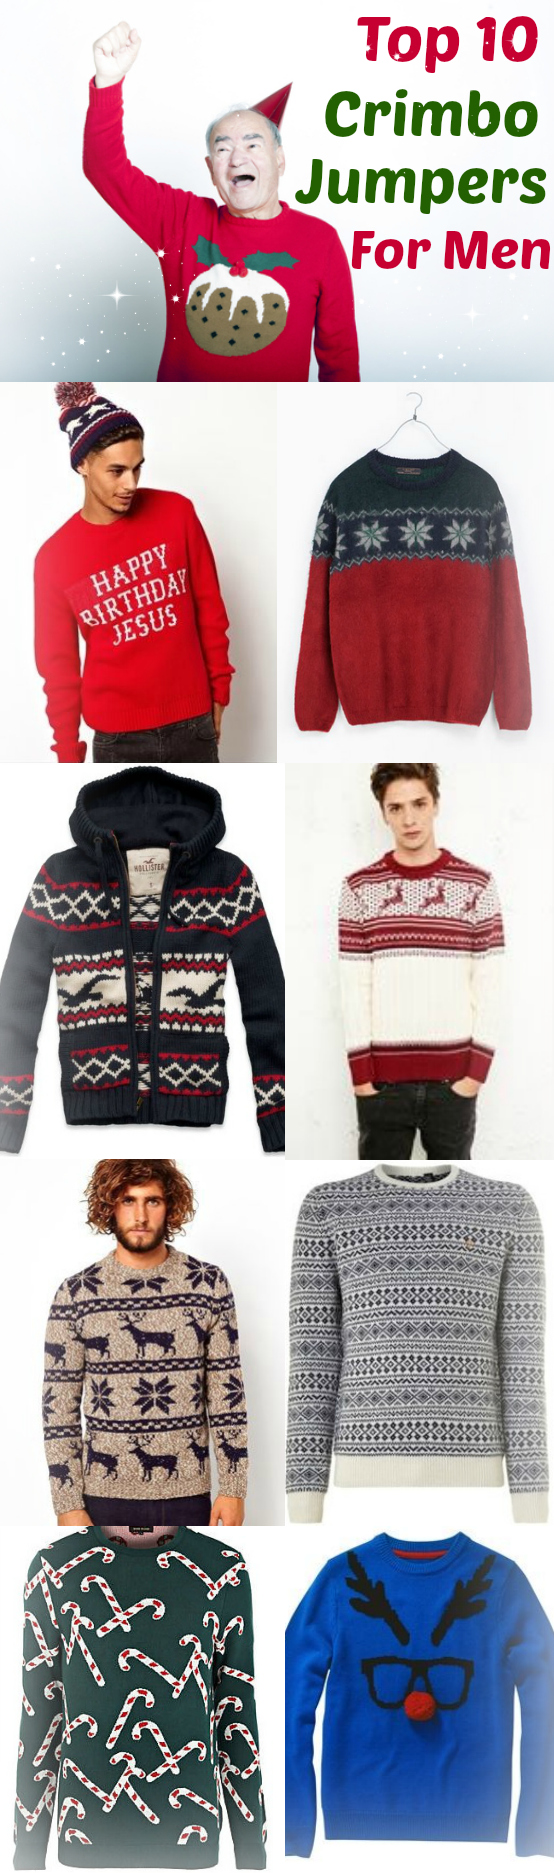 Top 10 Men's Christmas Jumpers 2013 (With images) Mens